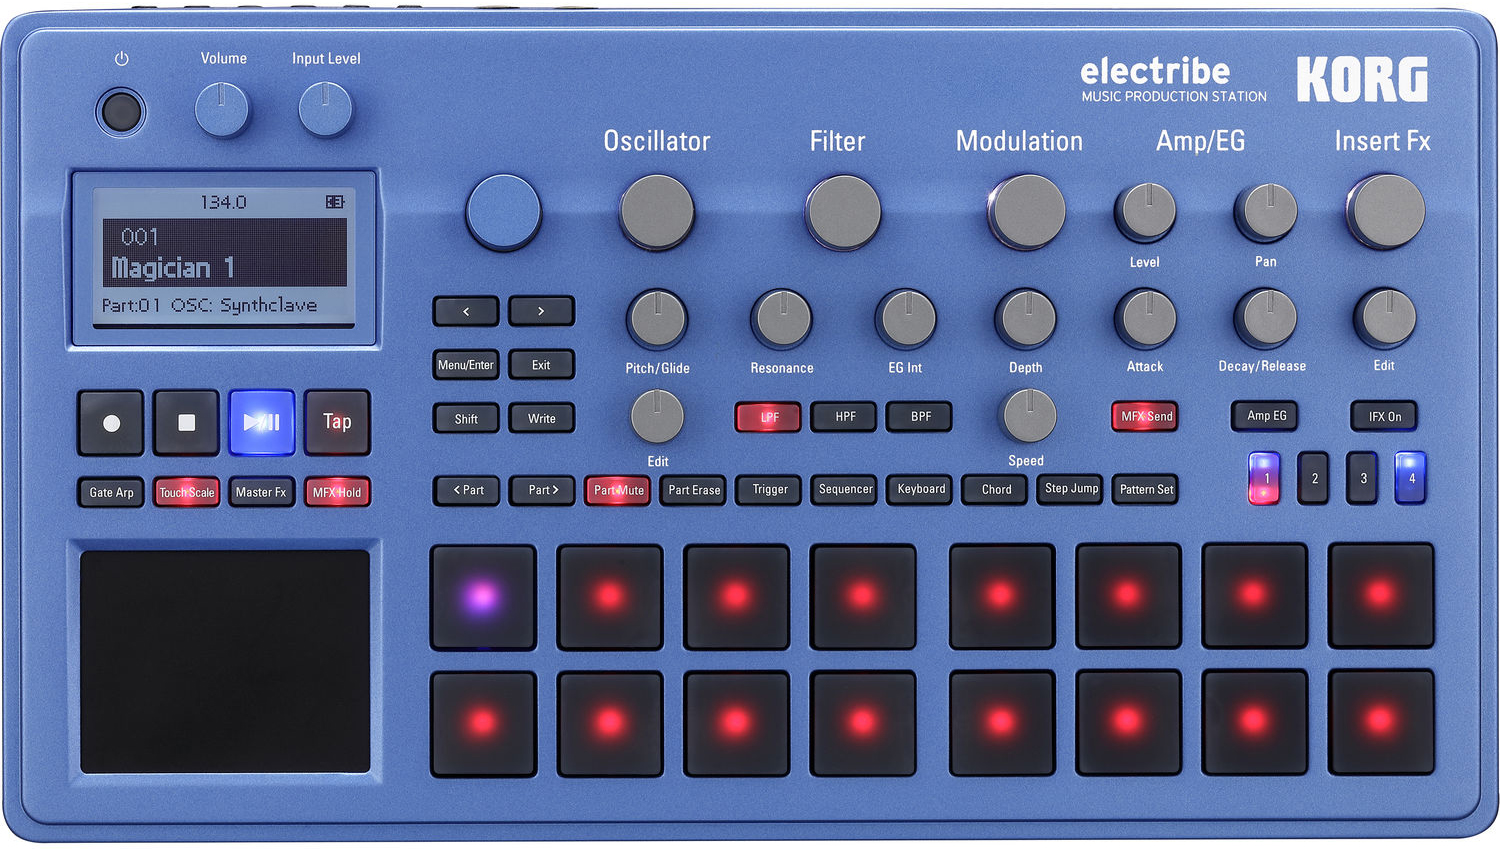 Korg Electribe Music Production Station with V2.0 Software